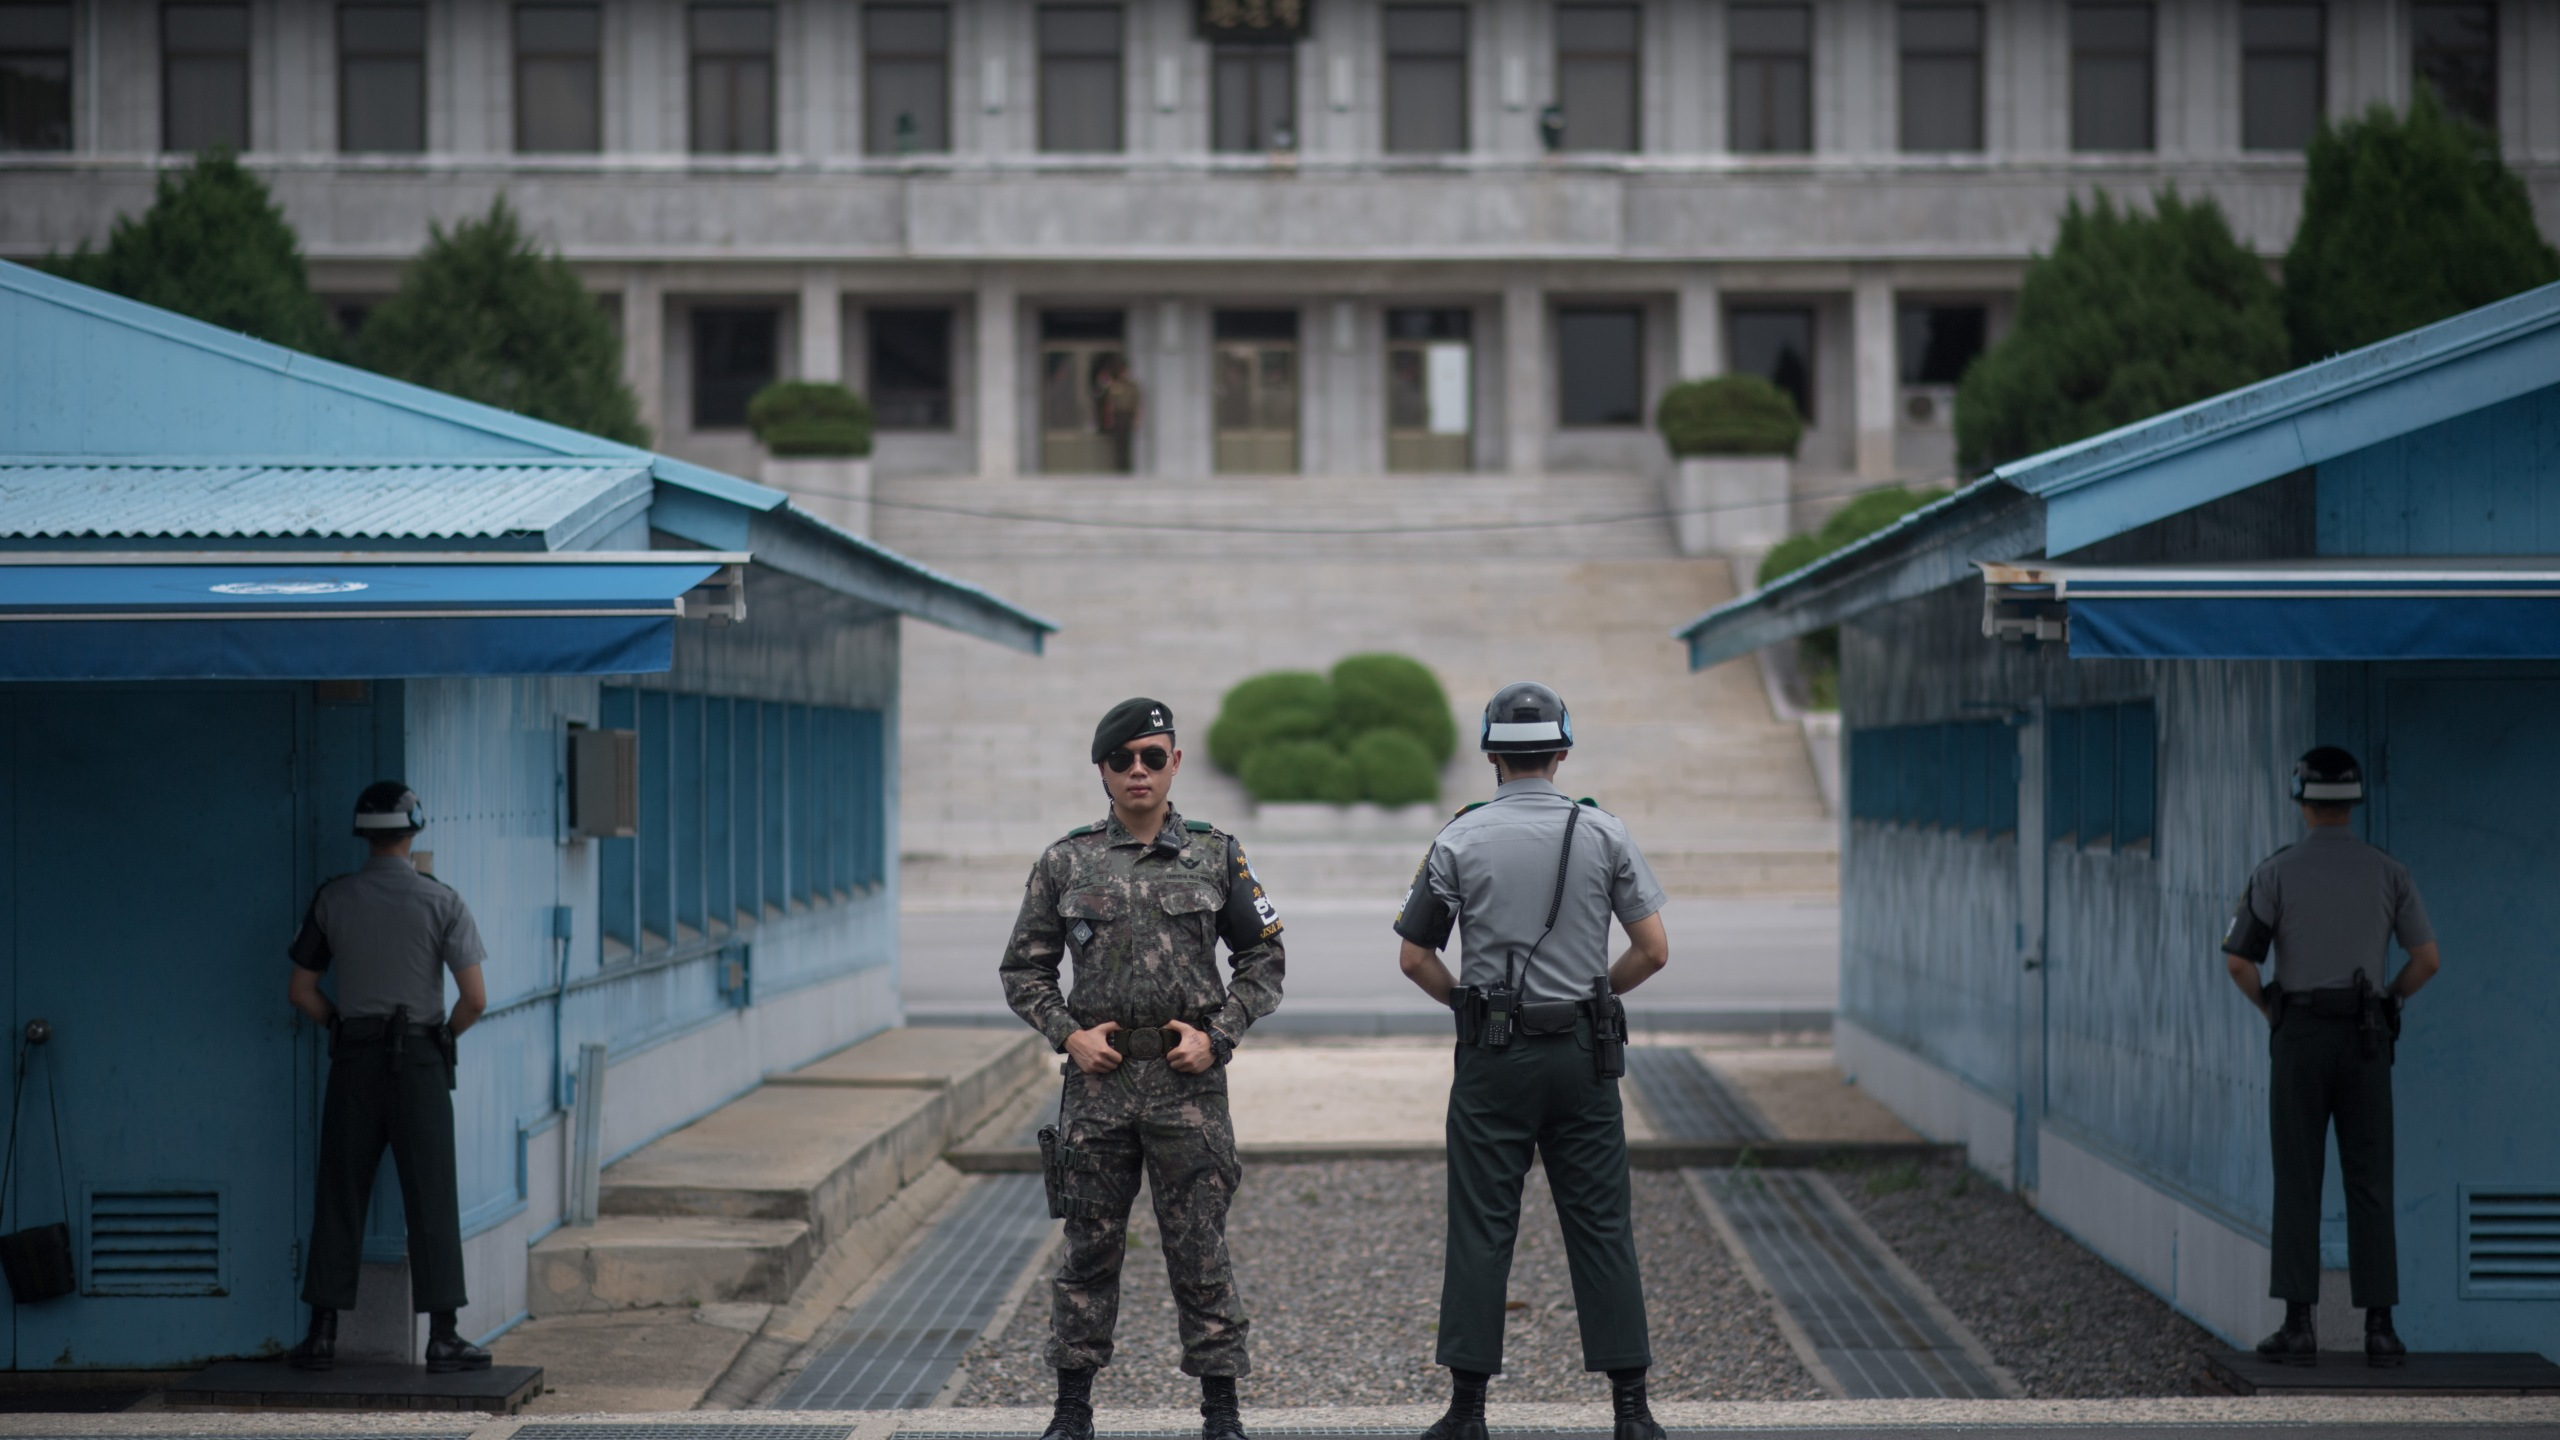 In a photo taken on Aug. 2, 2017, South Korean soldiers stand guard before North Korea's Panmon Hall and the military demarcation line separating North and South Korea, at Panmunjom, in the Joint Security Area of the Demilitarized Zone. (ED JONES/AFP/Getty Images)